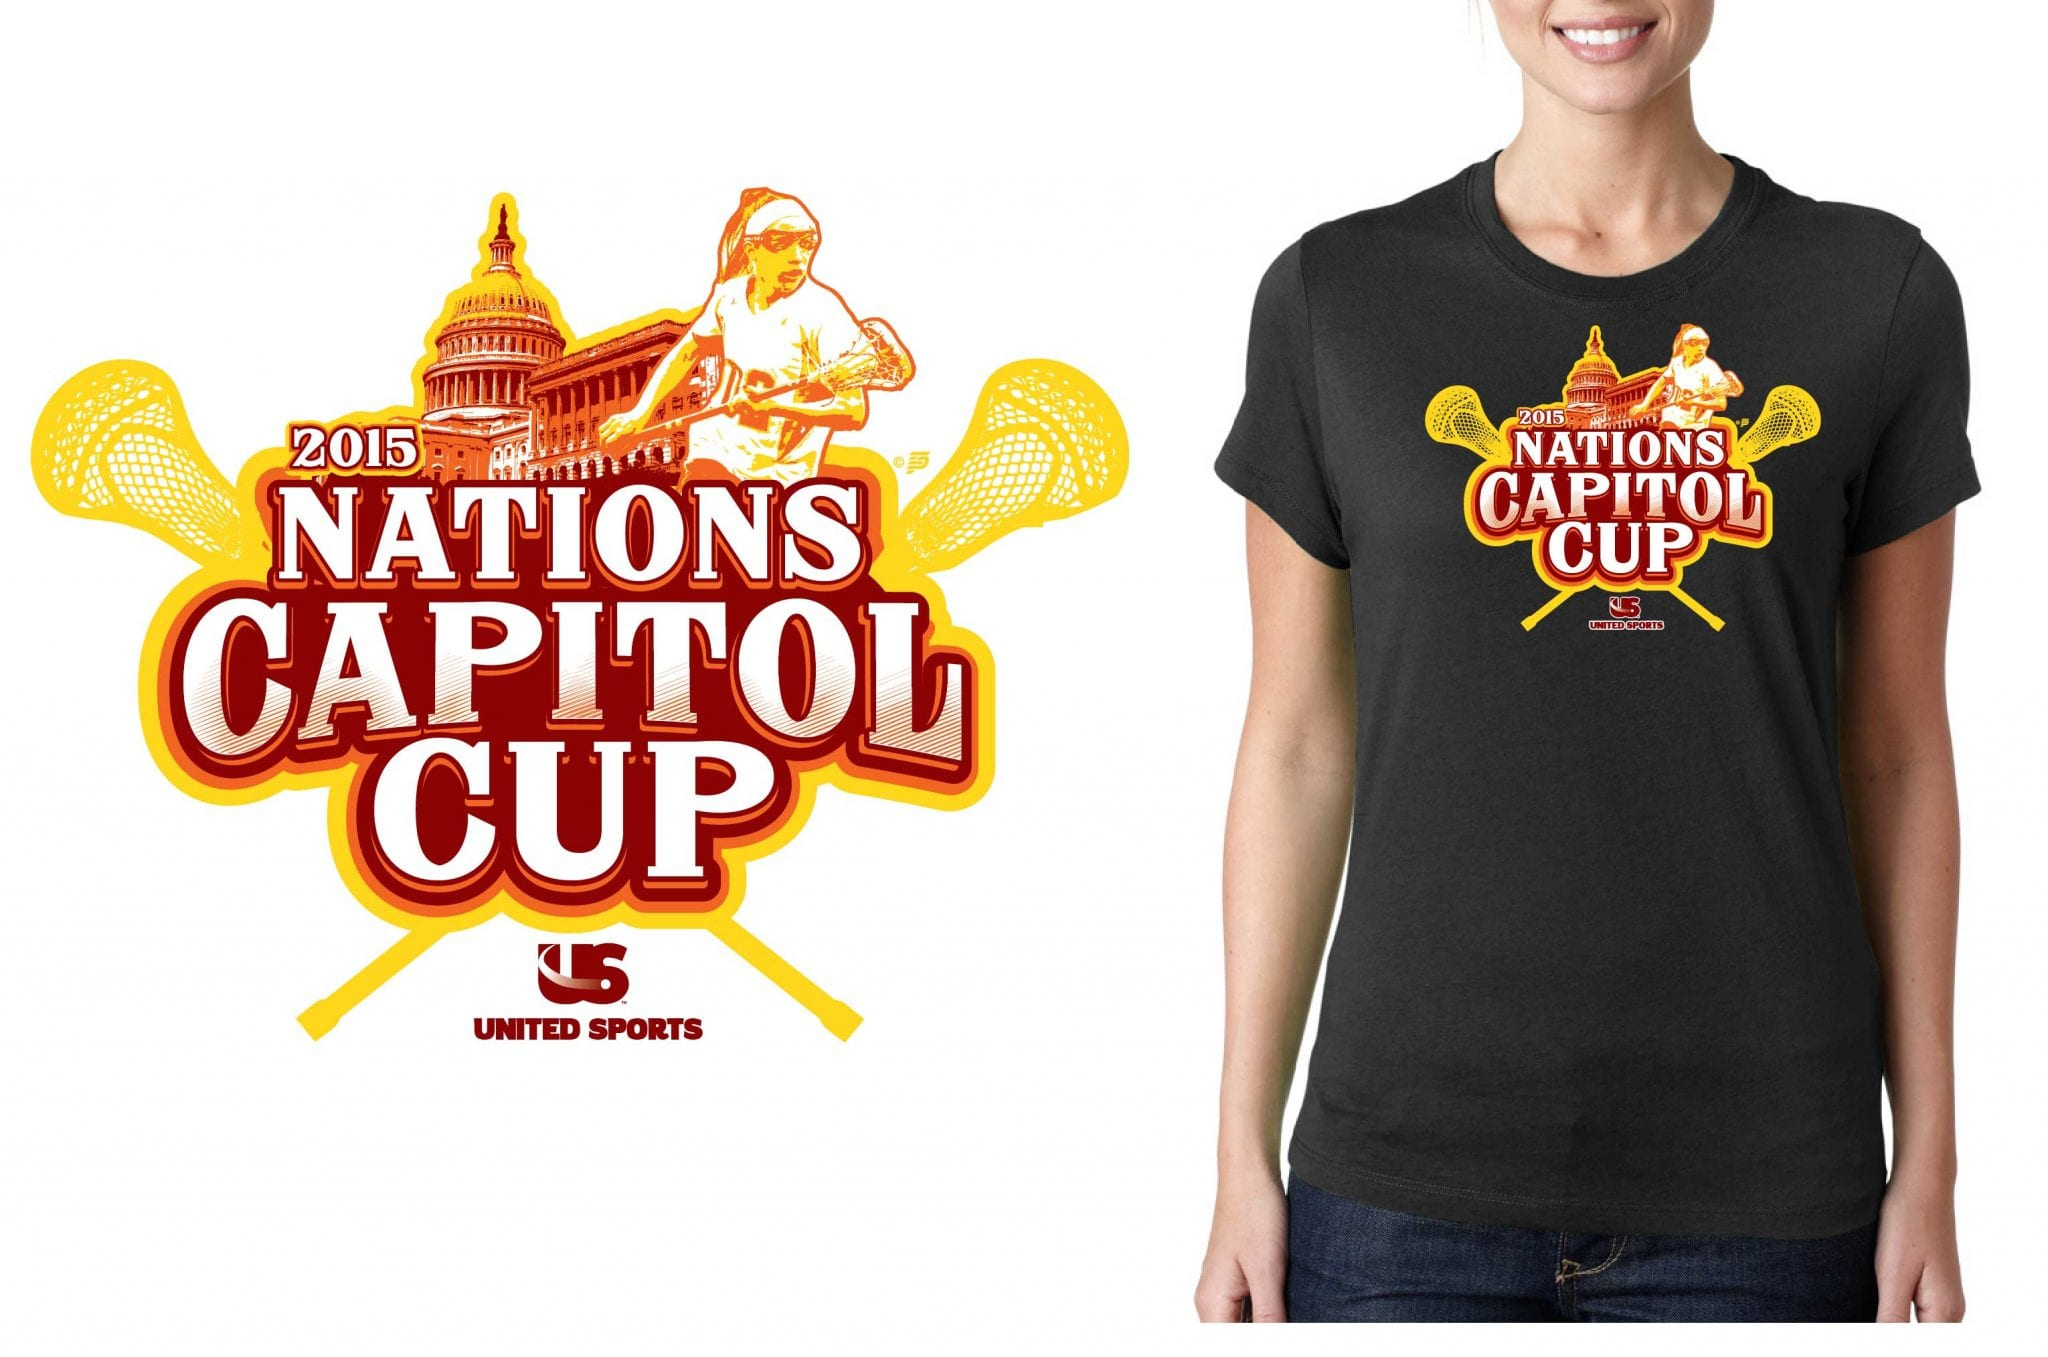 2015 Nations Capitol Cup PRINT READY